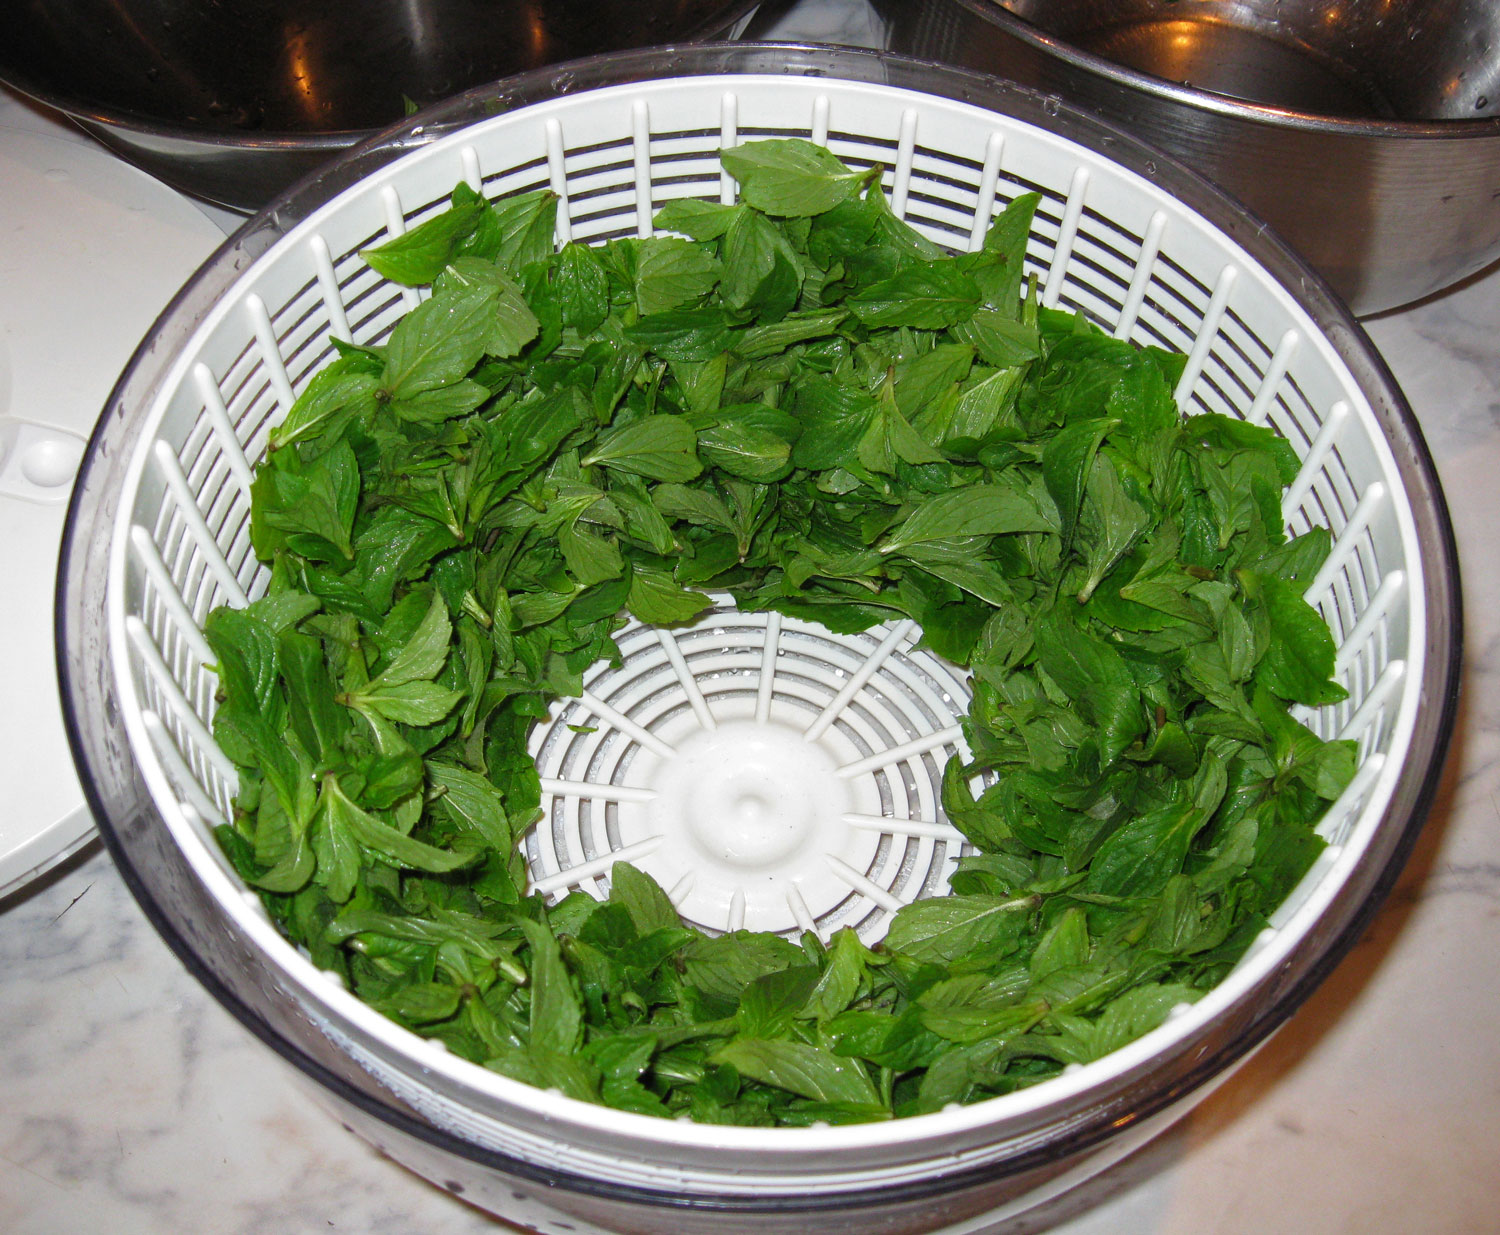 After rinsing the bowl and spinning the leaves they are ready to go on the dehydrator racks.